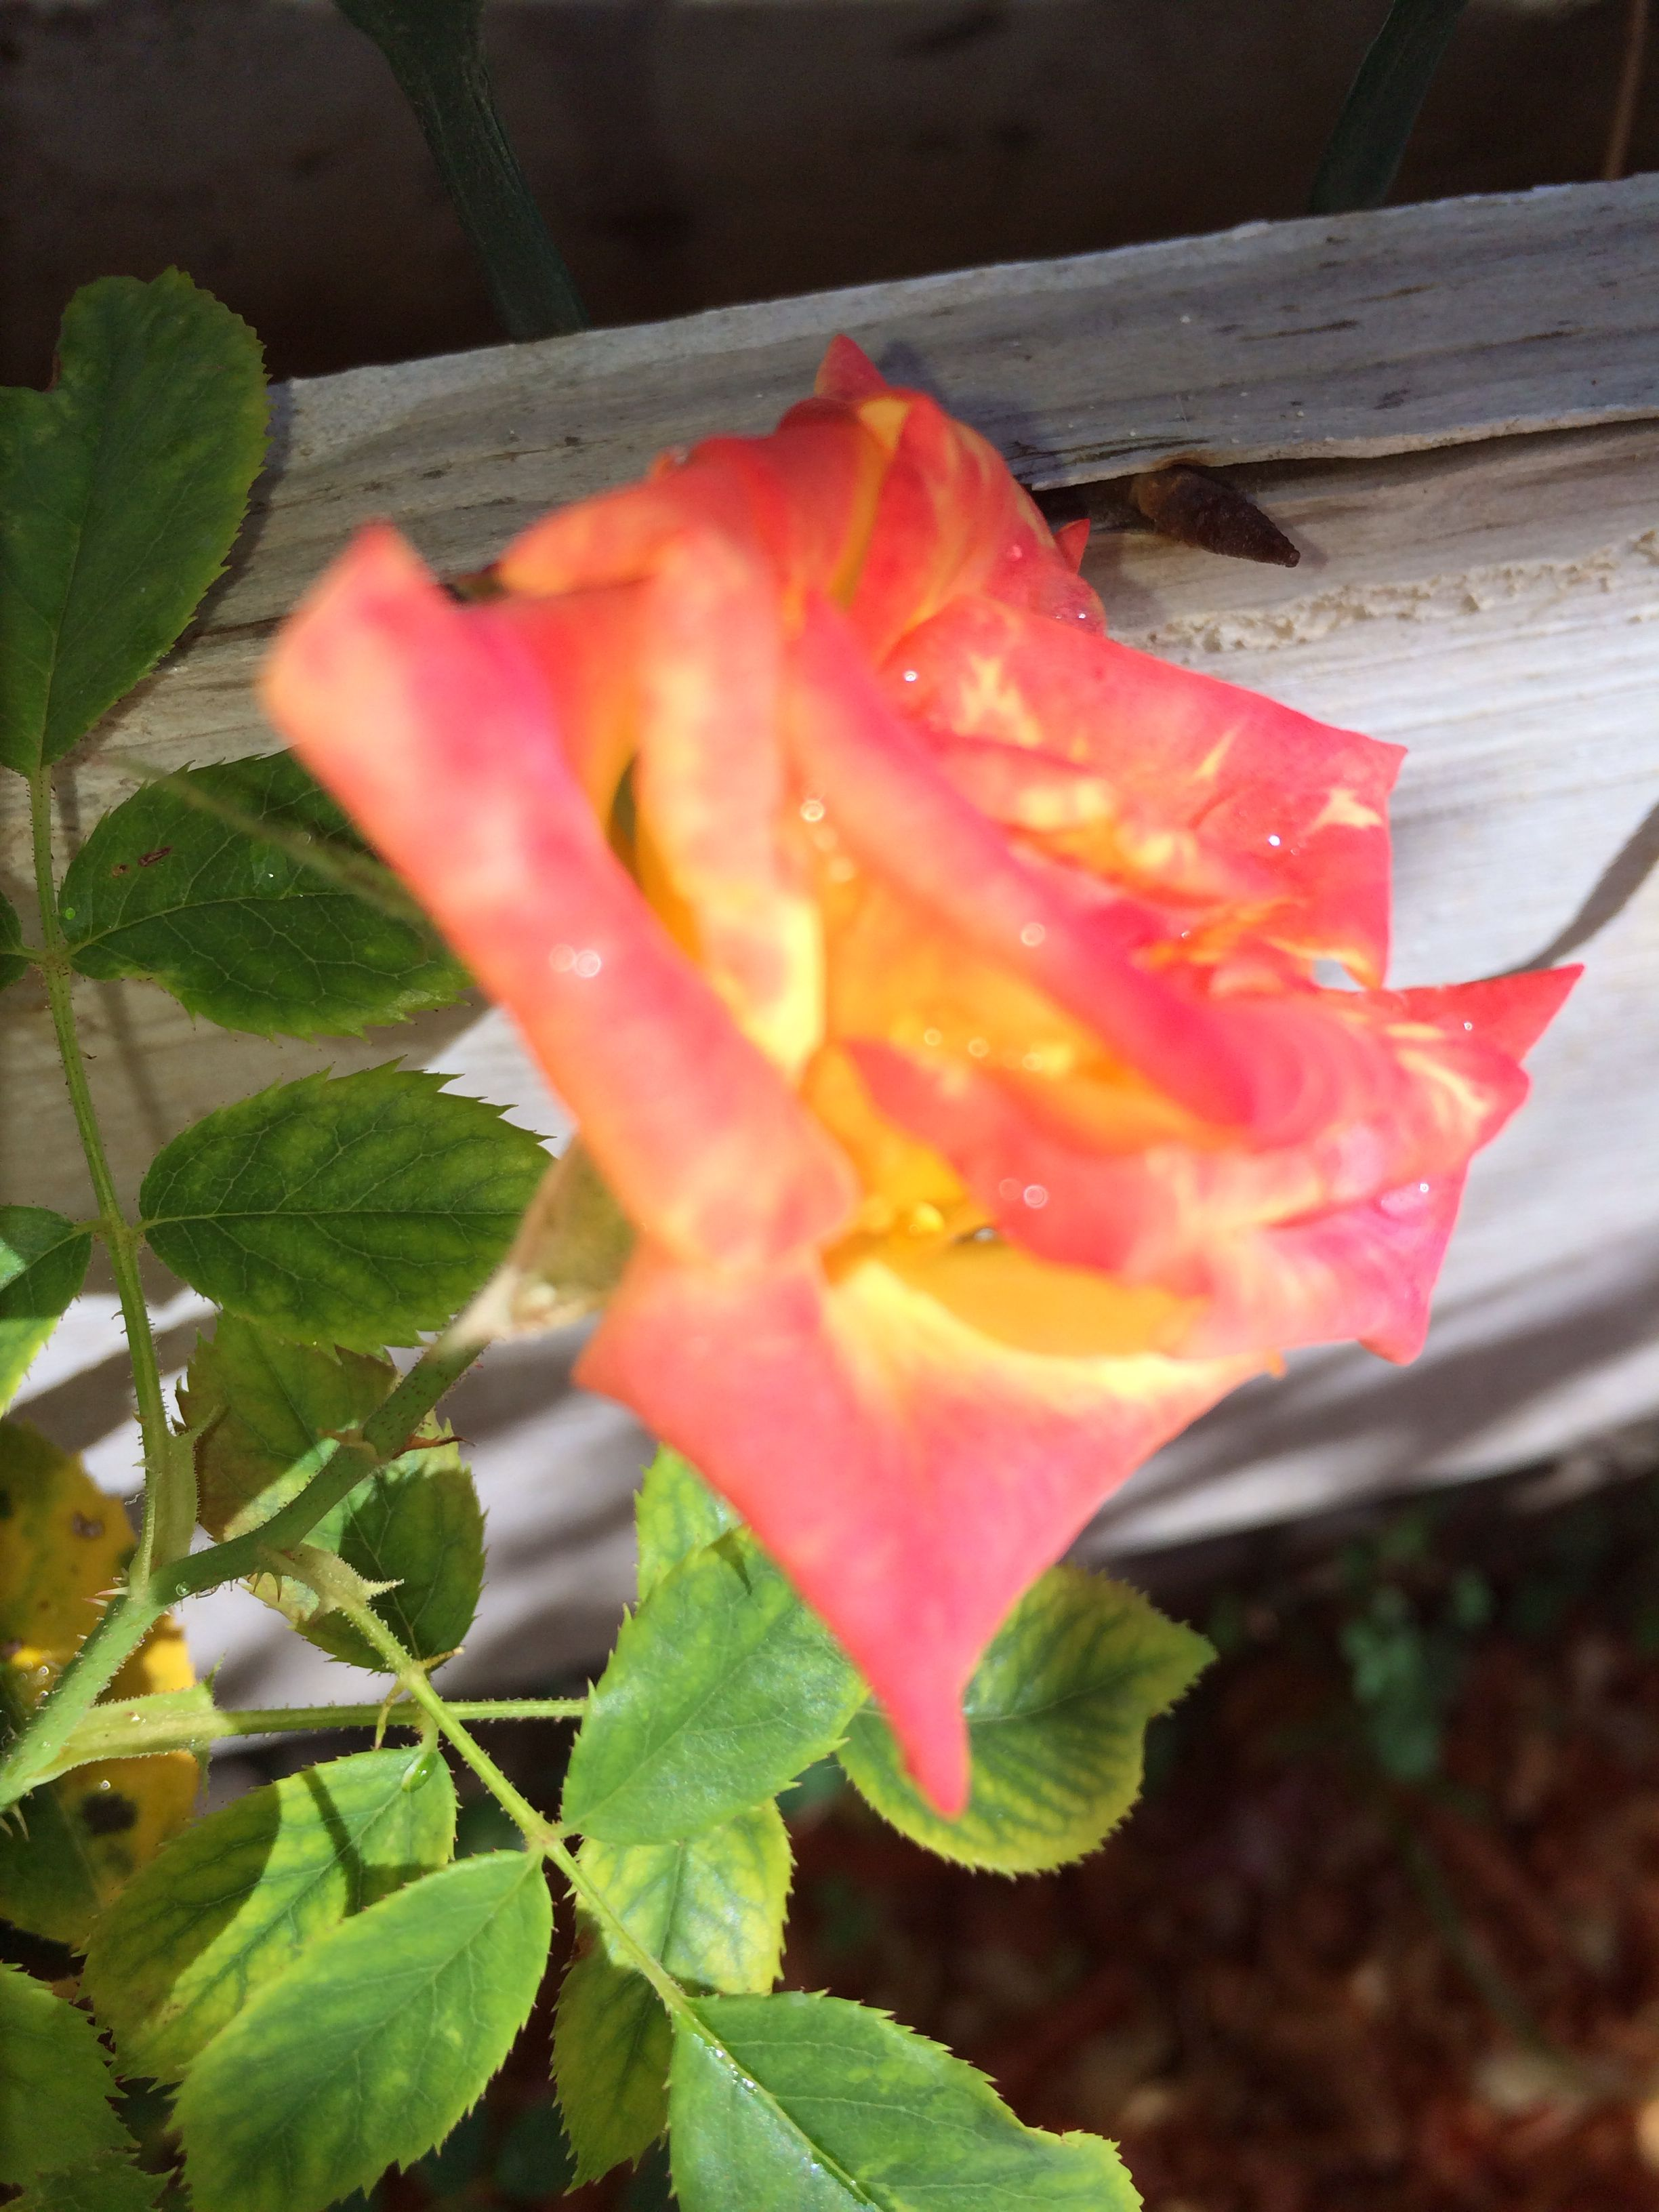 Pin by nessie mcnab on my garden pinterest rose and gardens